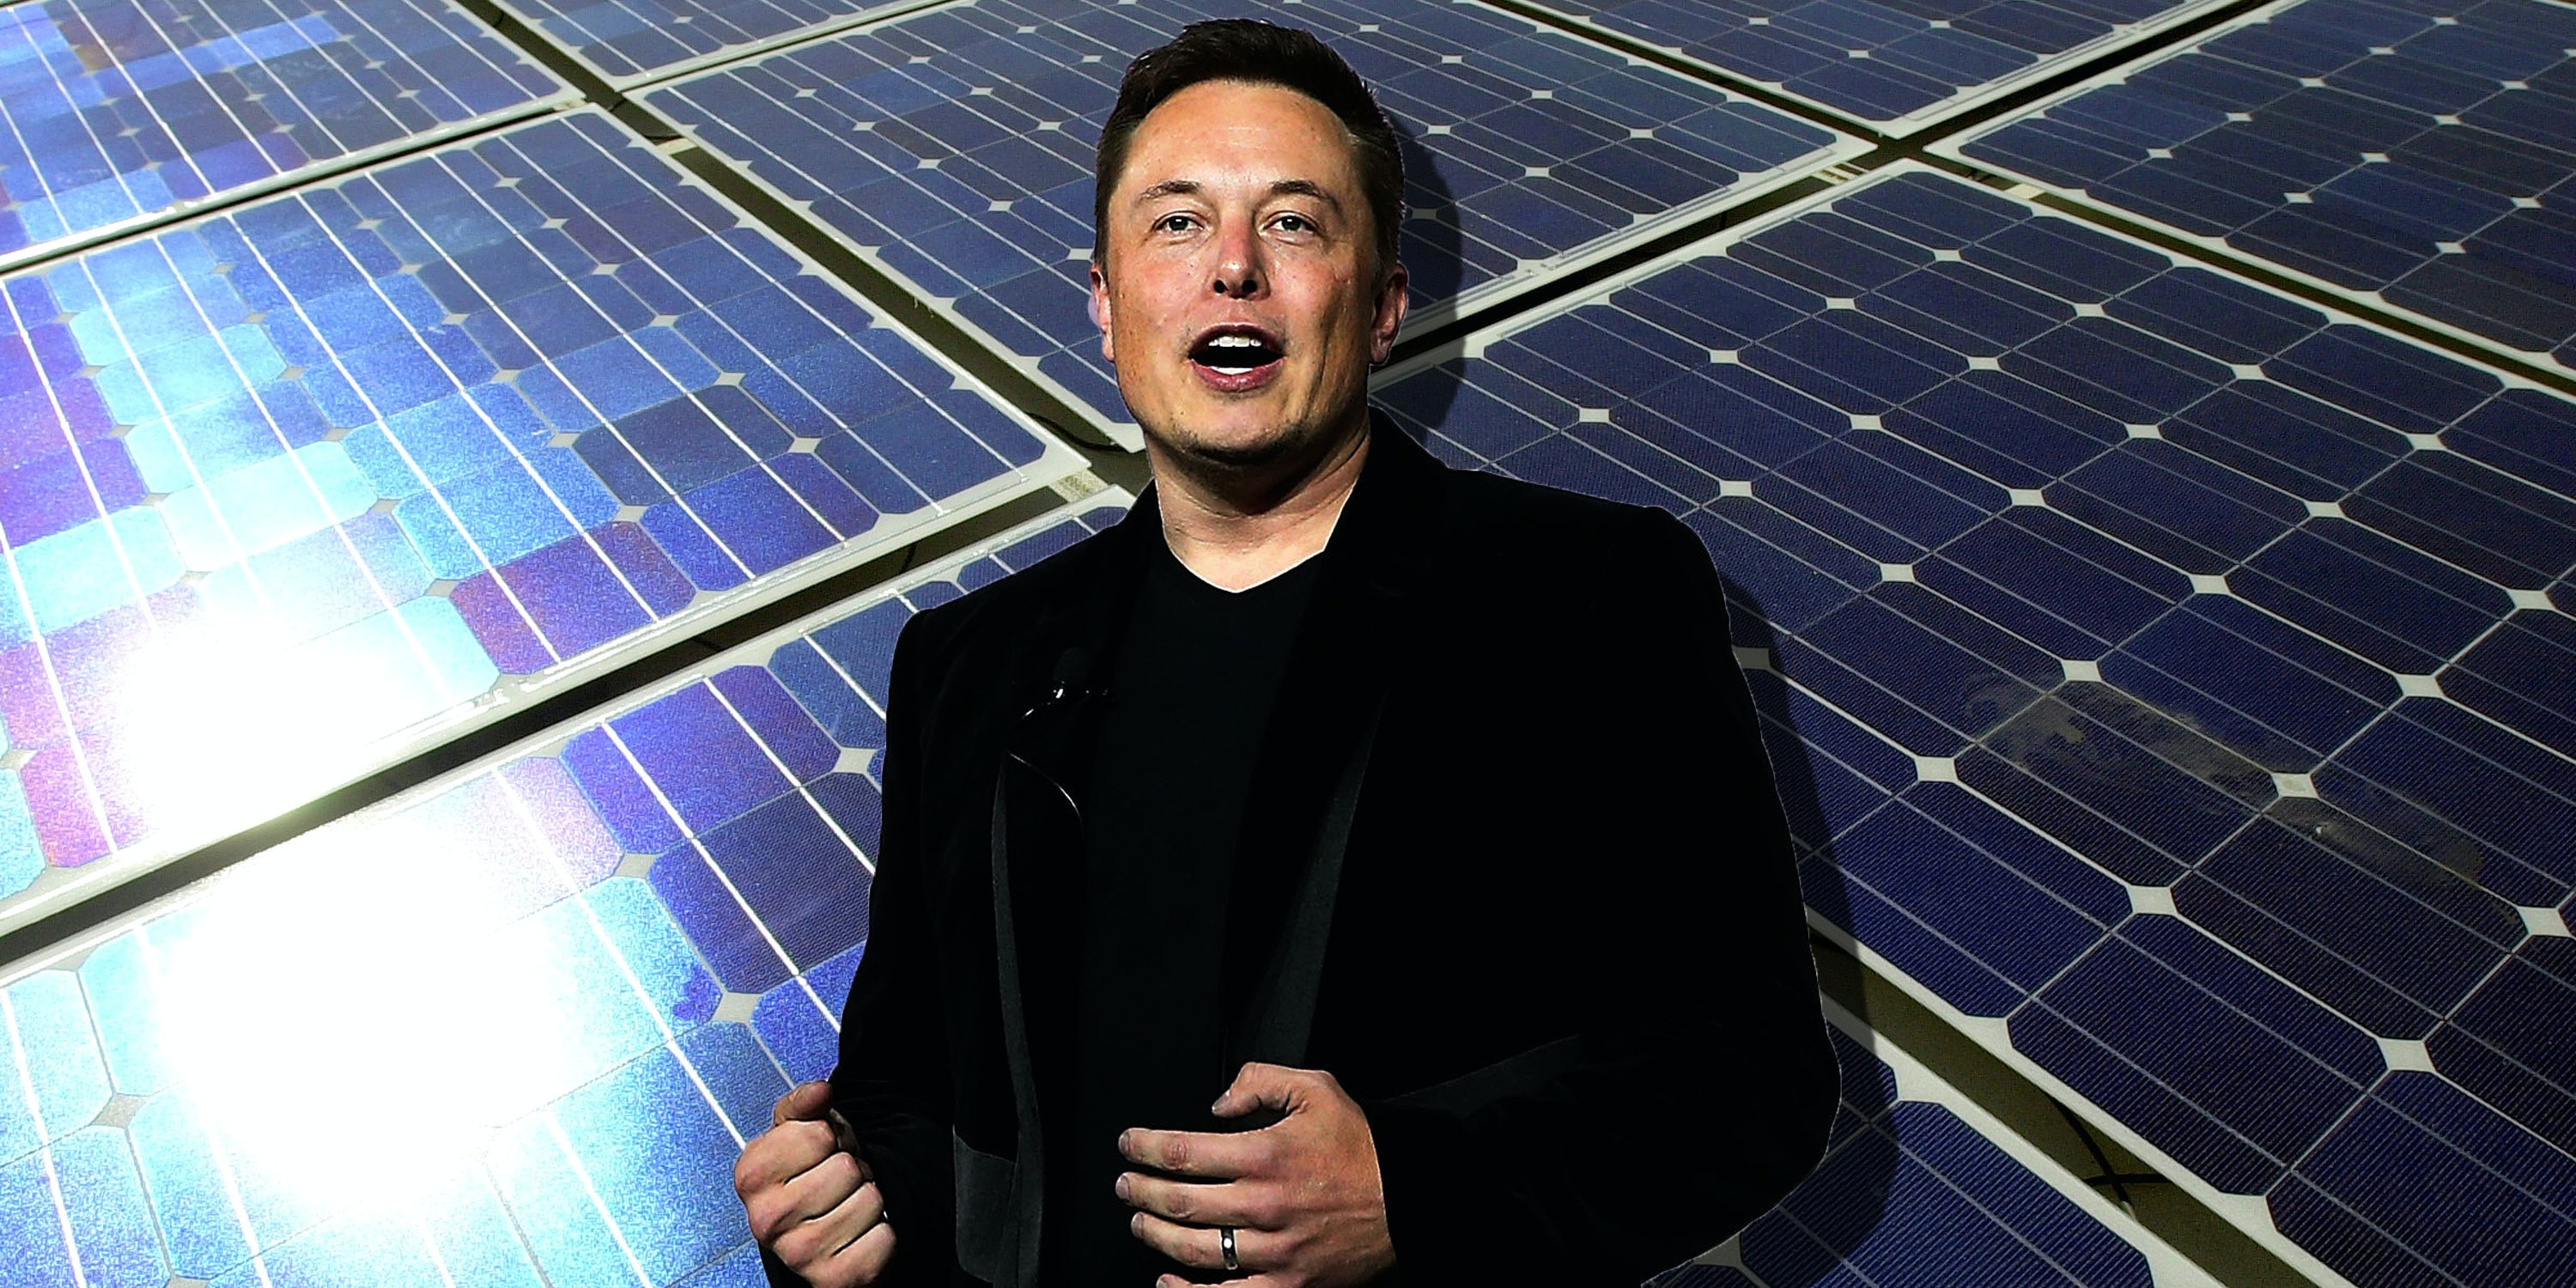 Elon Musk has a vision for the home of the future.